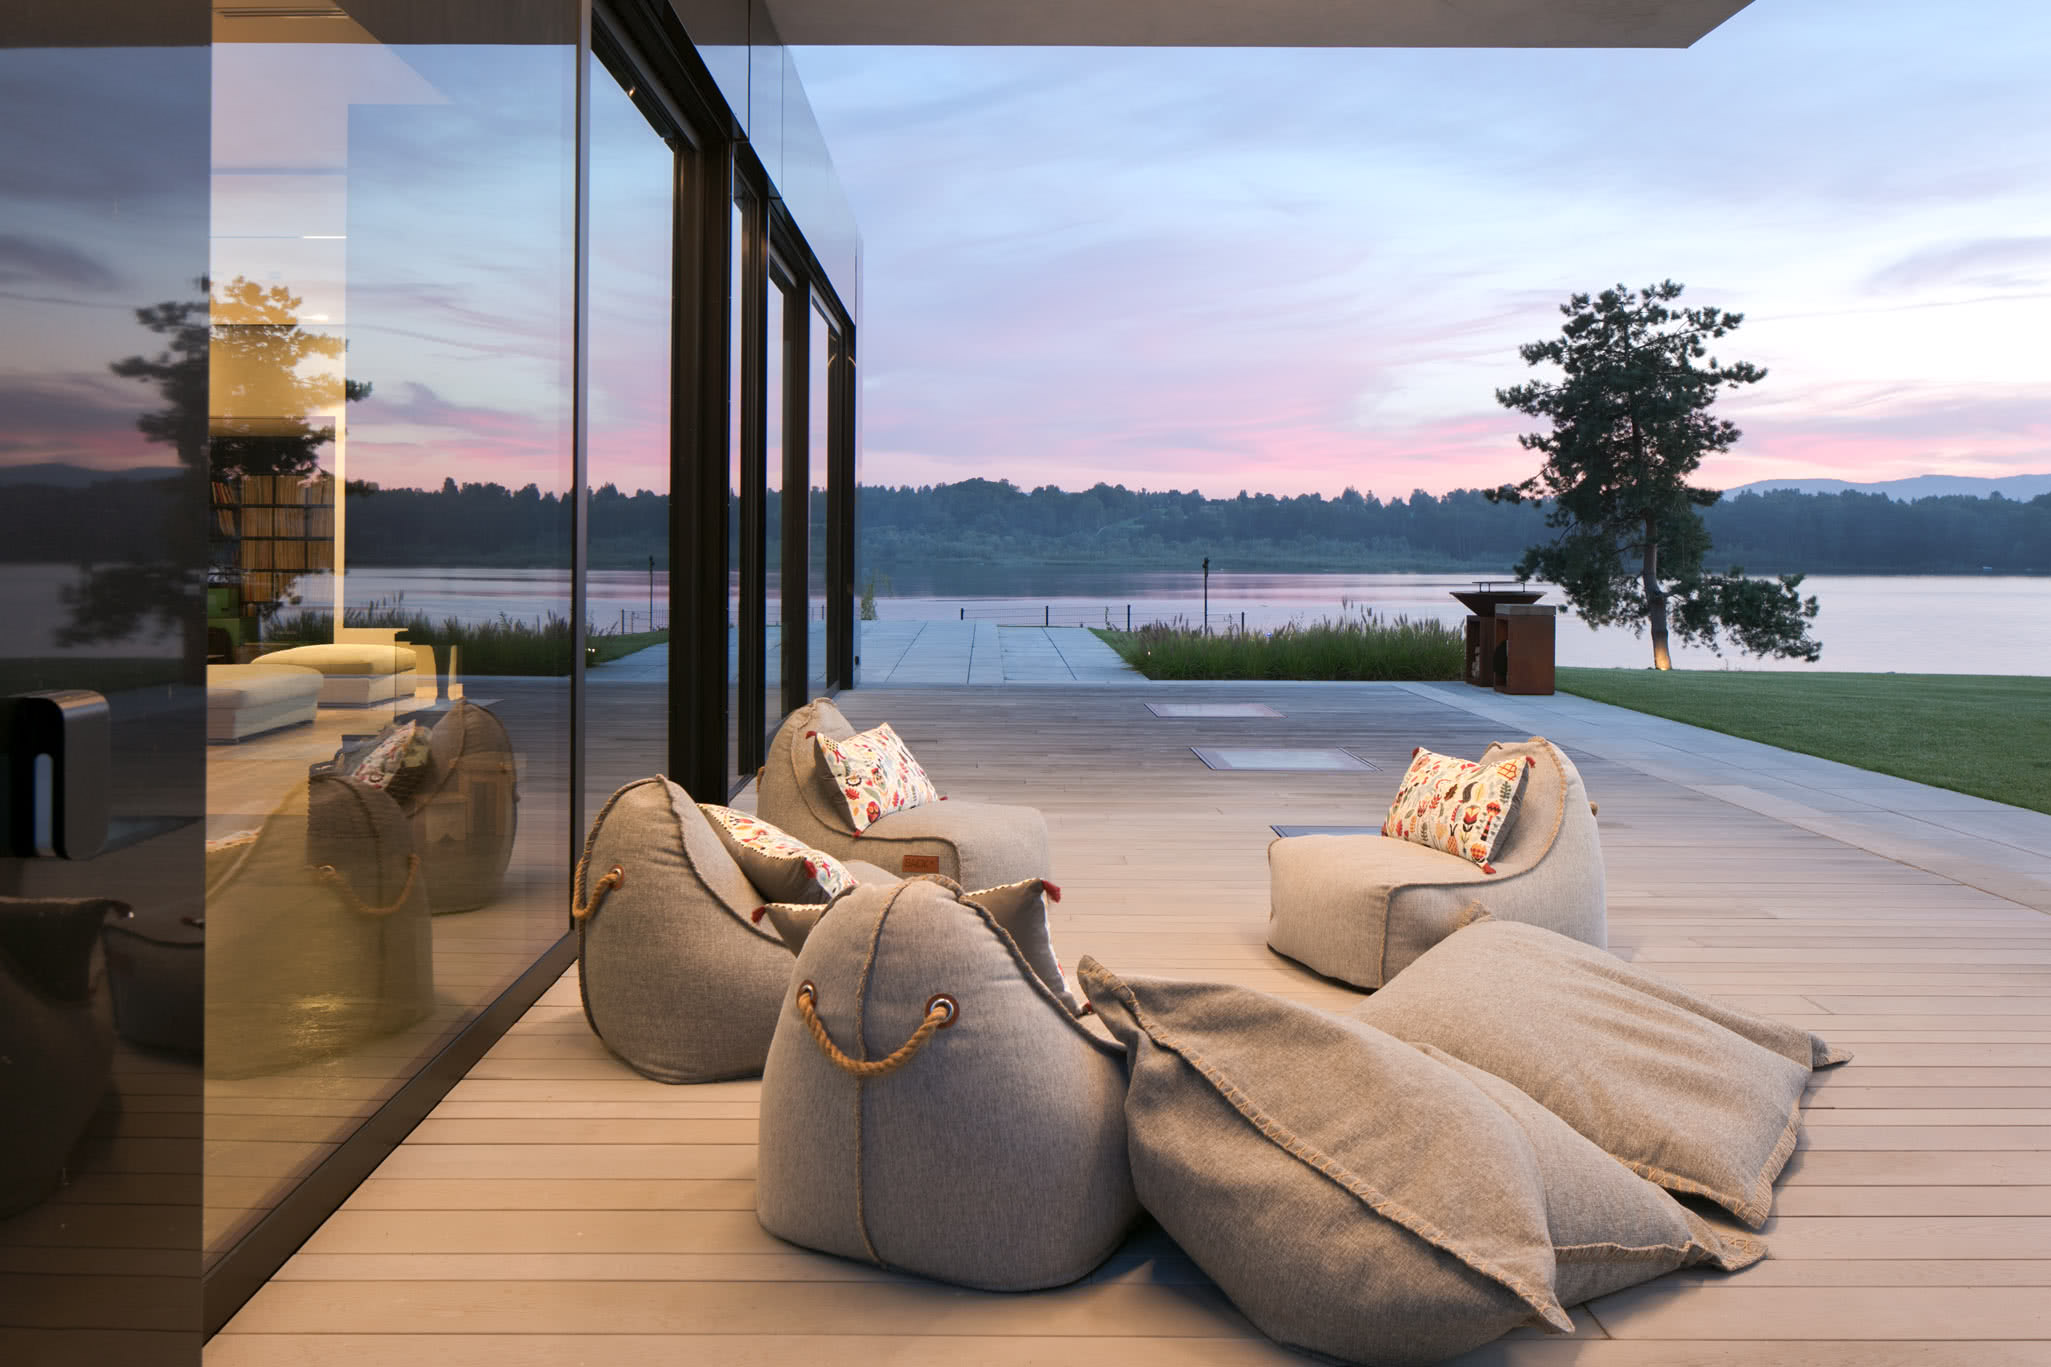 RE: LAKESIDE HOUSE projektu architekta Marcina Tomaszewskiego REFORM Architekt